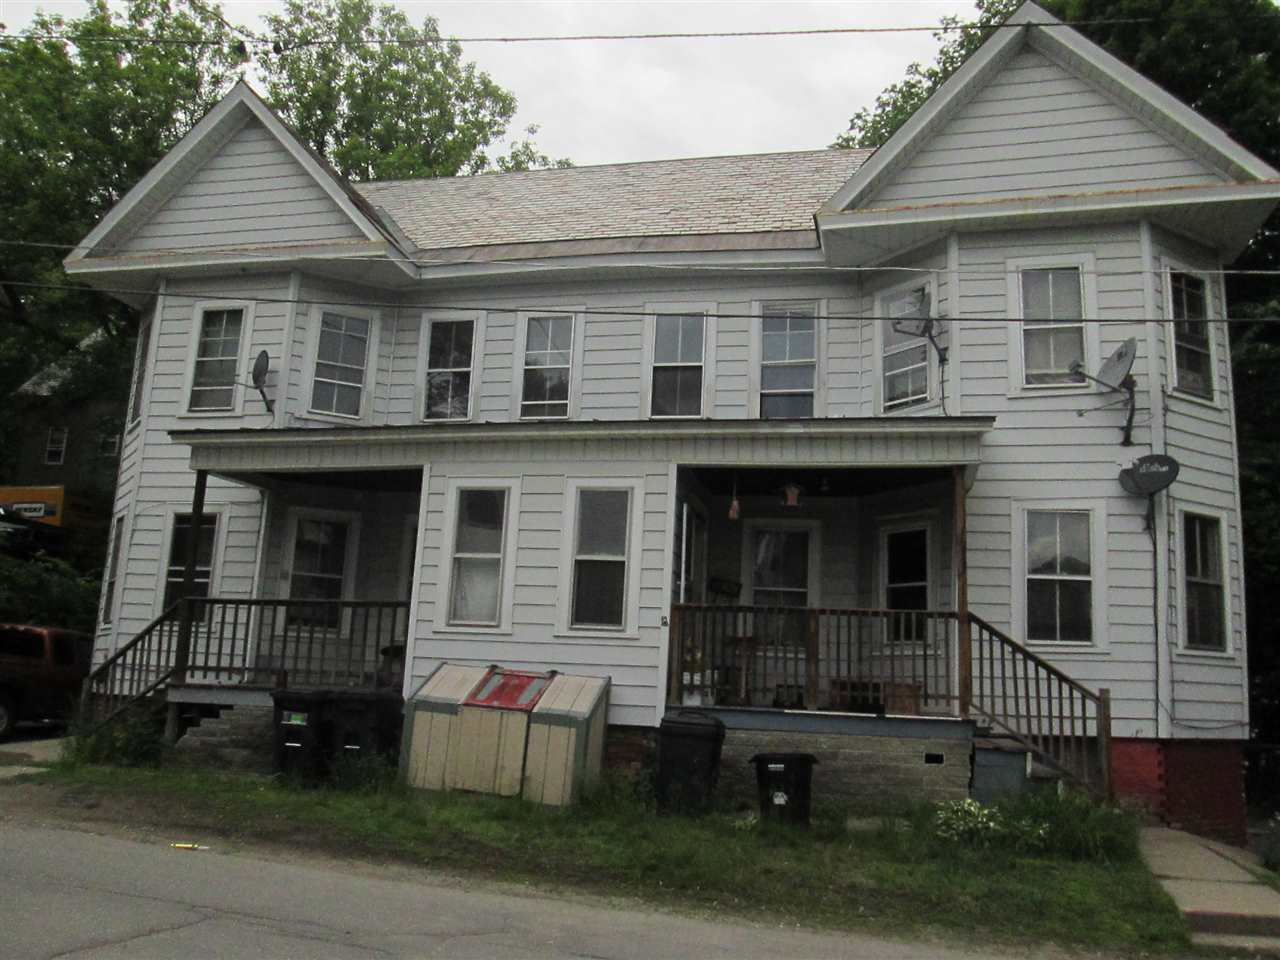 ROCKINGHAM VT Multi Family for sale $$77,000 | $28 per sq.ft.